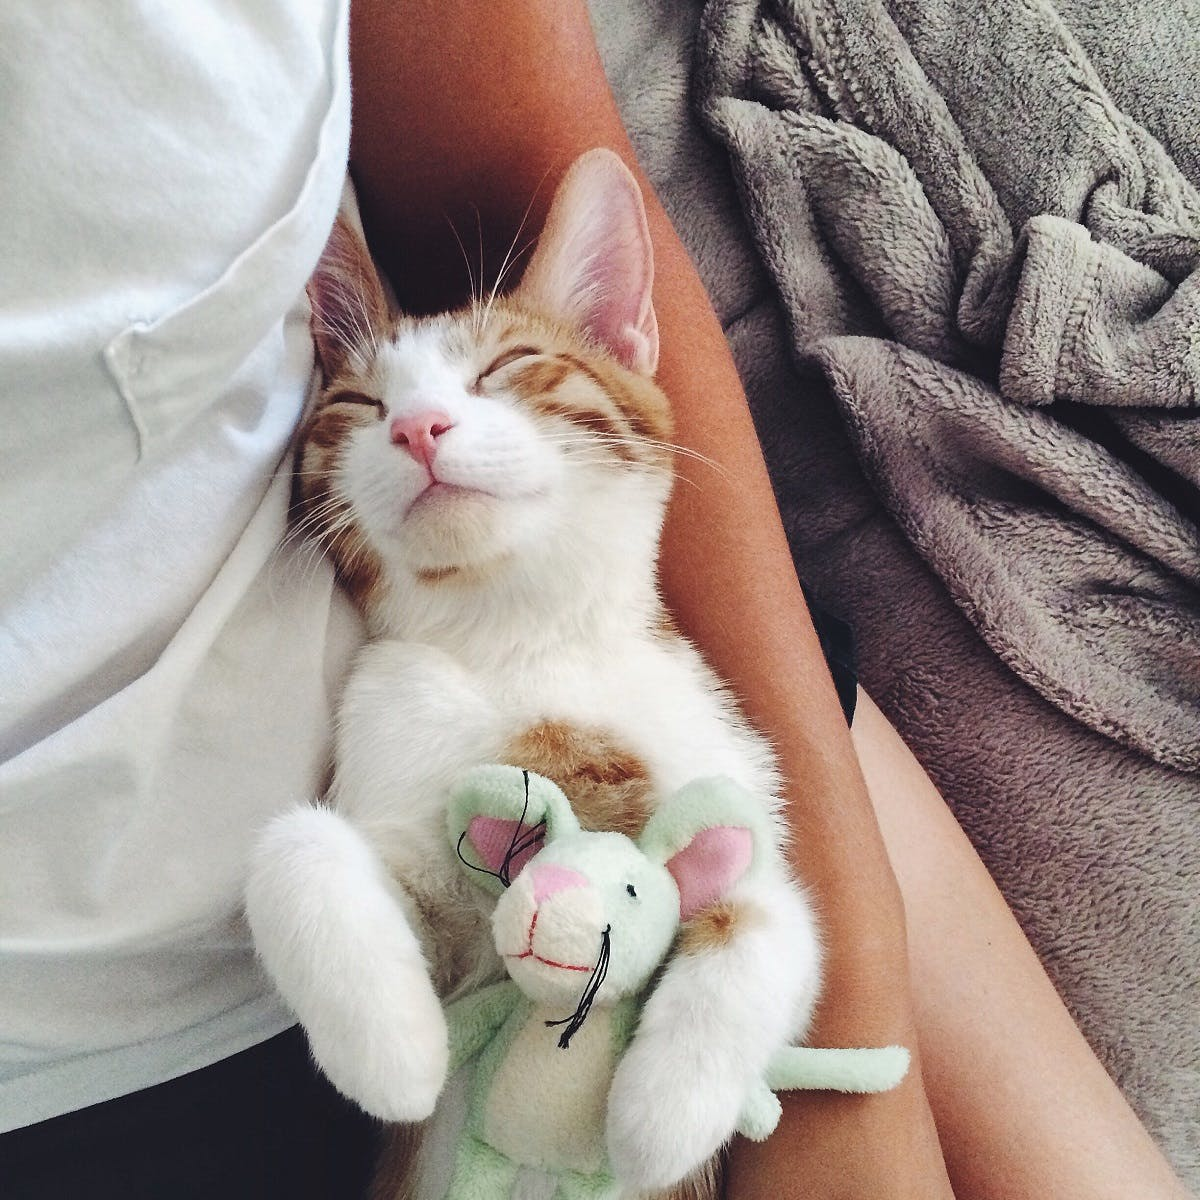 A white cat with orange ears snuggles with a stuffed animal and his owner